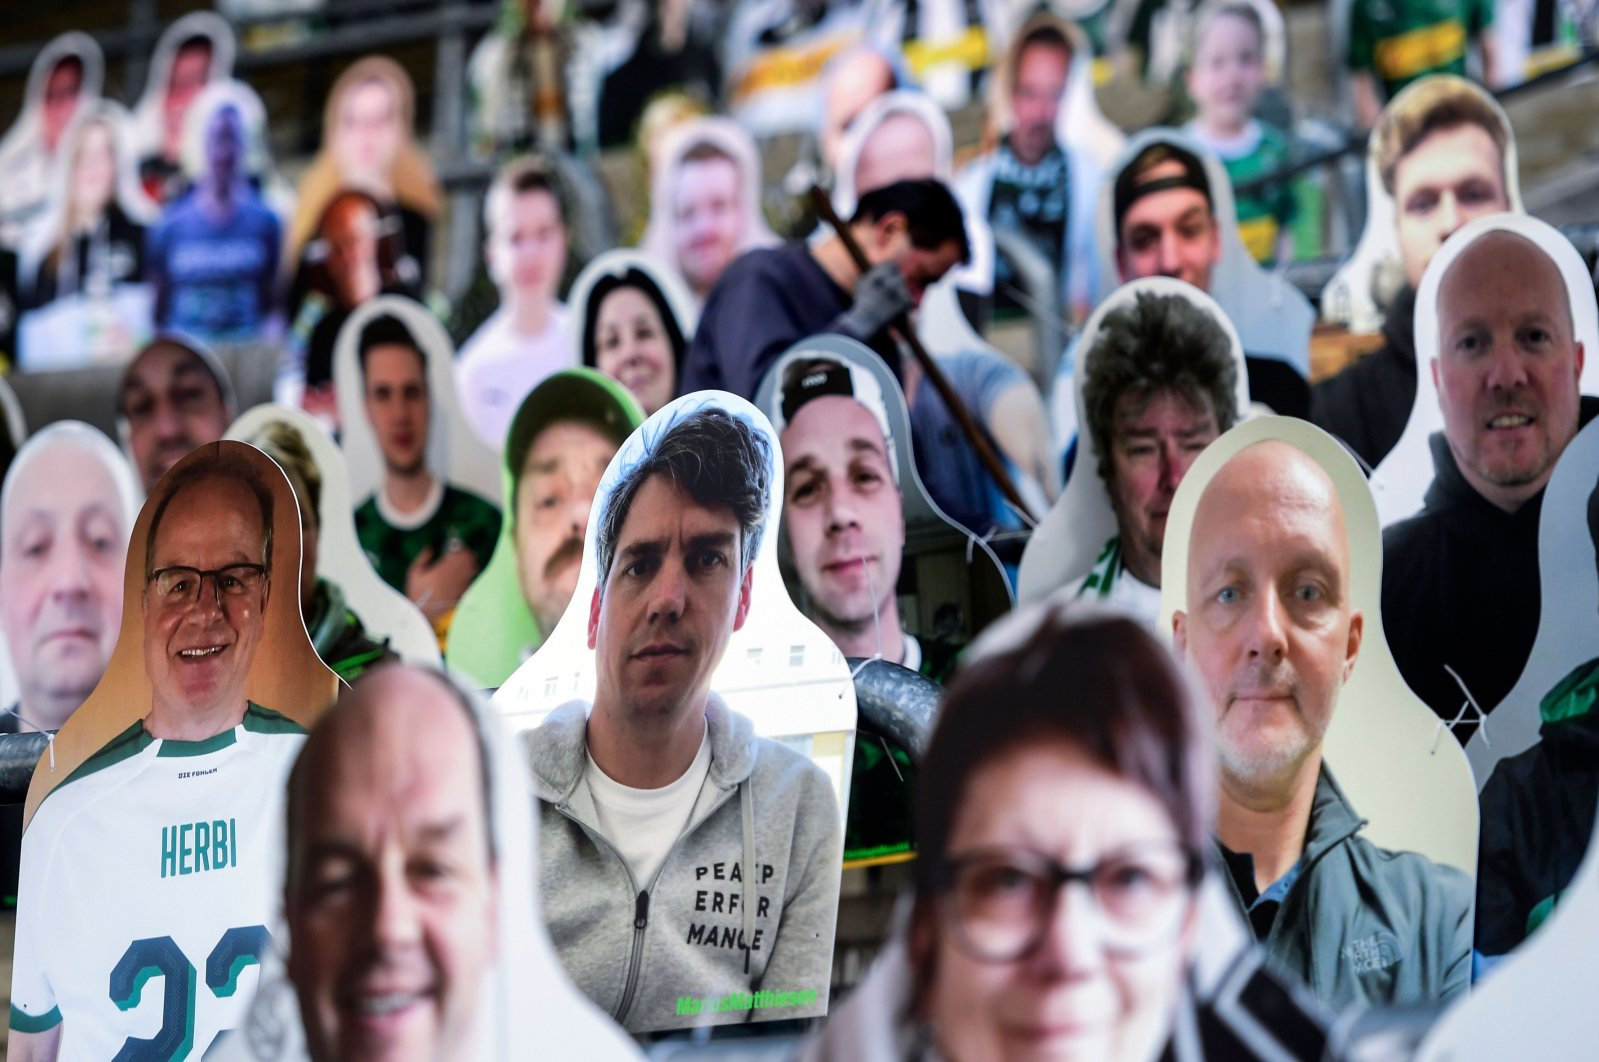 In this April 16, 2020, file photo cardboard cut-outs with portraits of Borussia Moenchengladbach's supporters are seen at the Borussia Park football stadium in Moenchengladbach, western Germany, amid the novel coronavirus COVID-19 pandemic. (AFP Photo)